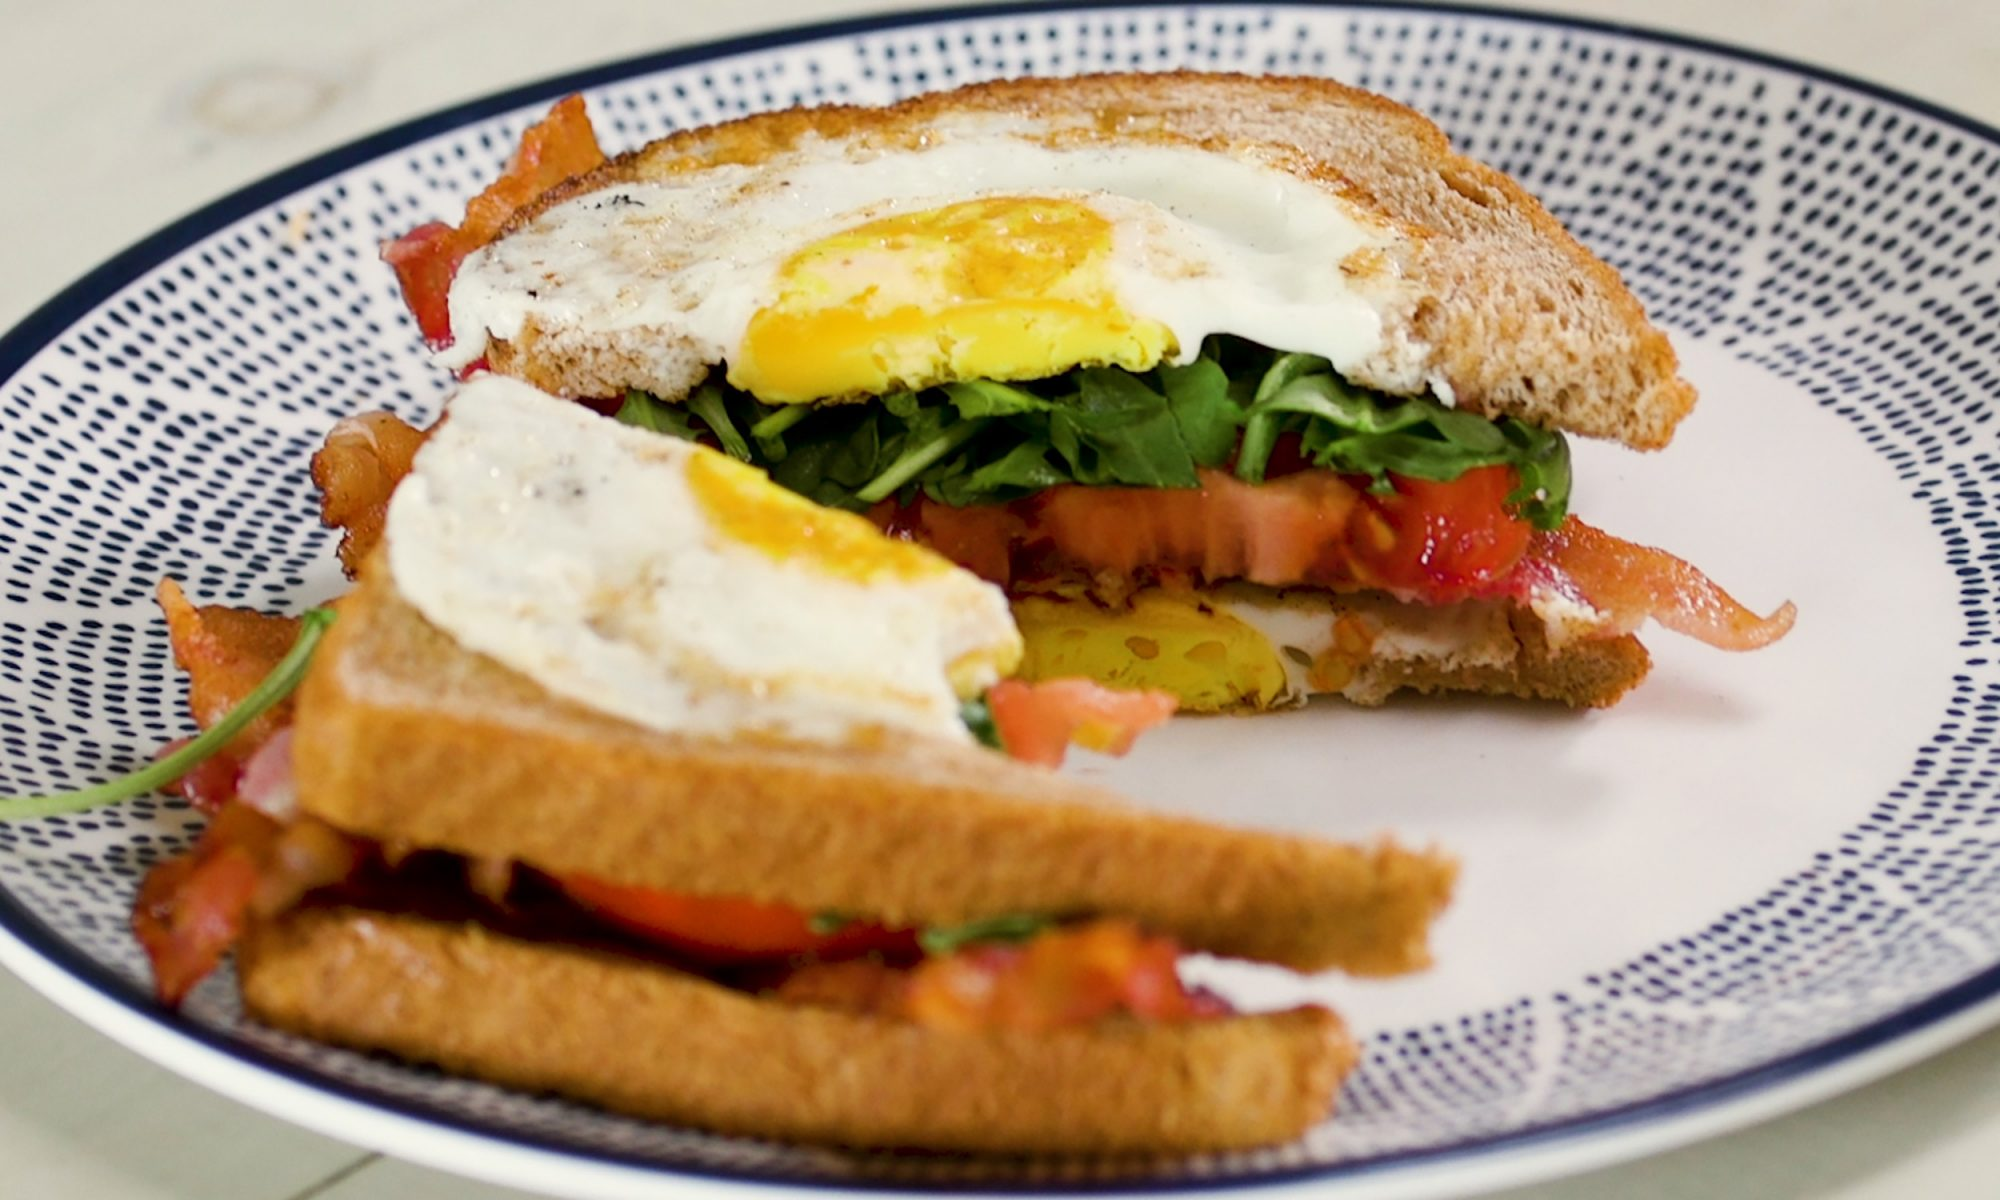 The Epic Egg-in-a-Hole BLT You Must Make Now